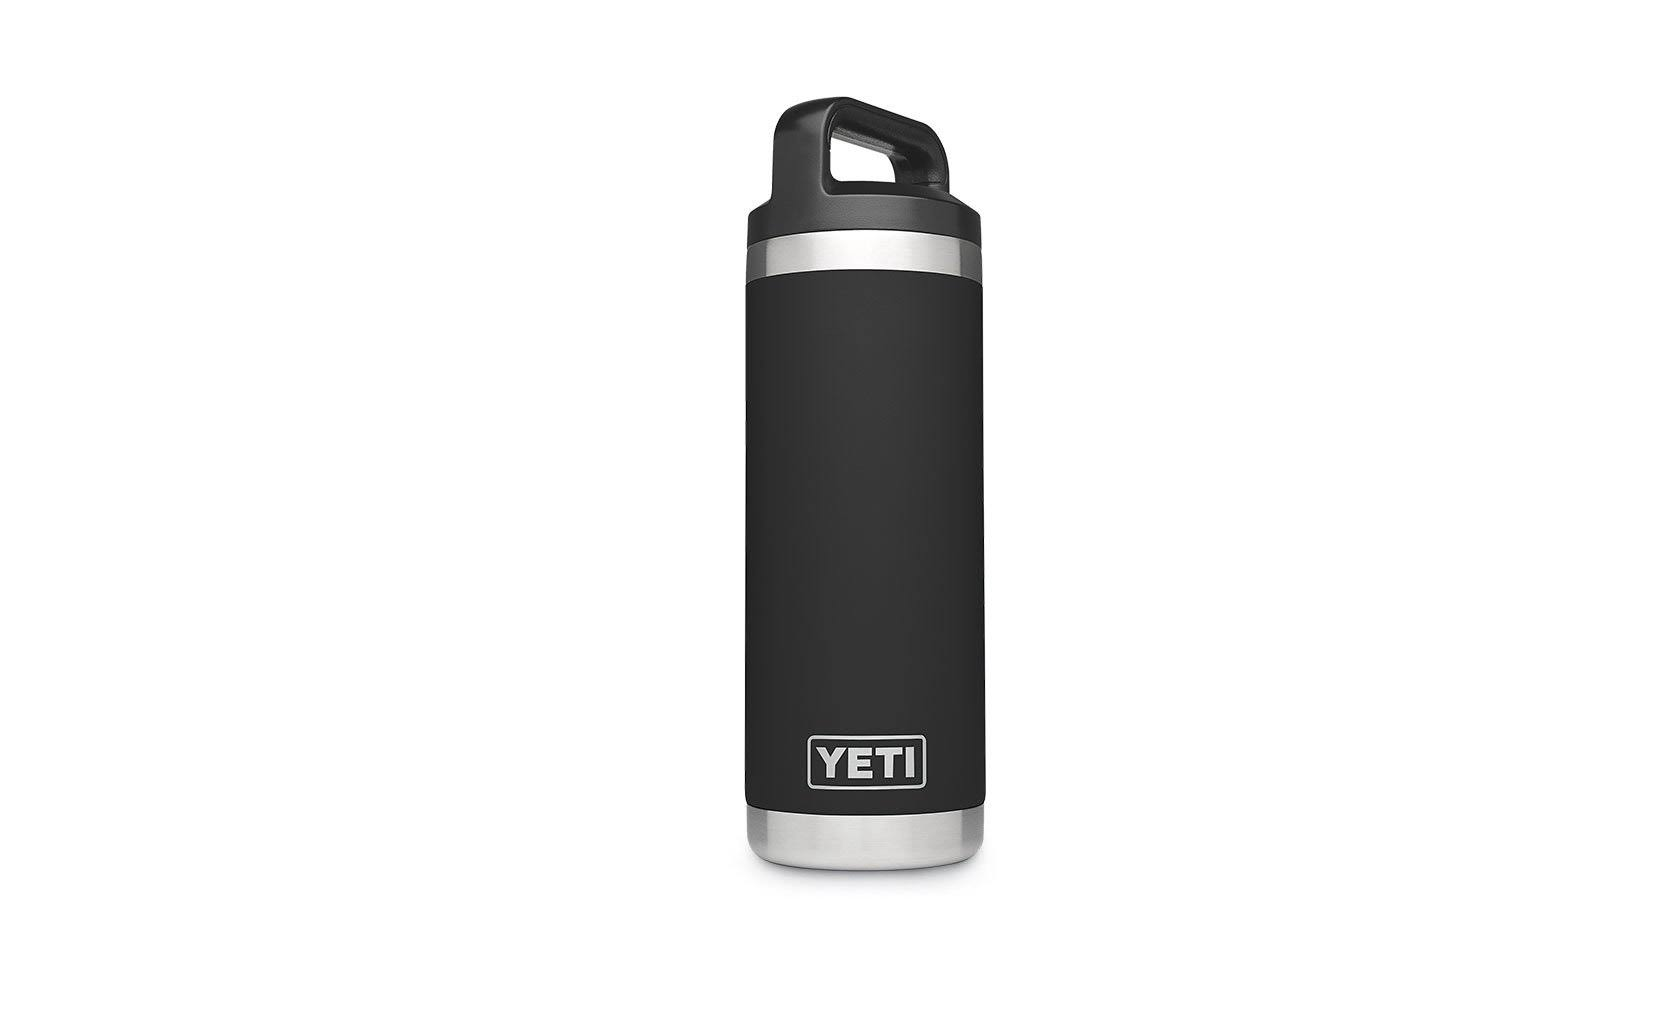 Yeti Rambler Vacuum Bottle - Black, 18oz